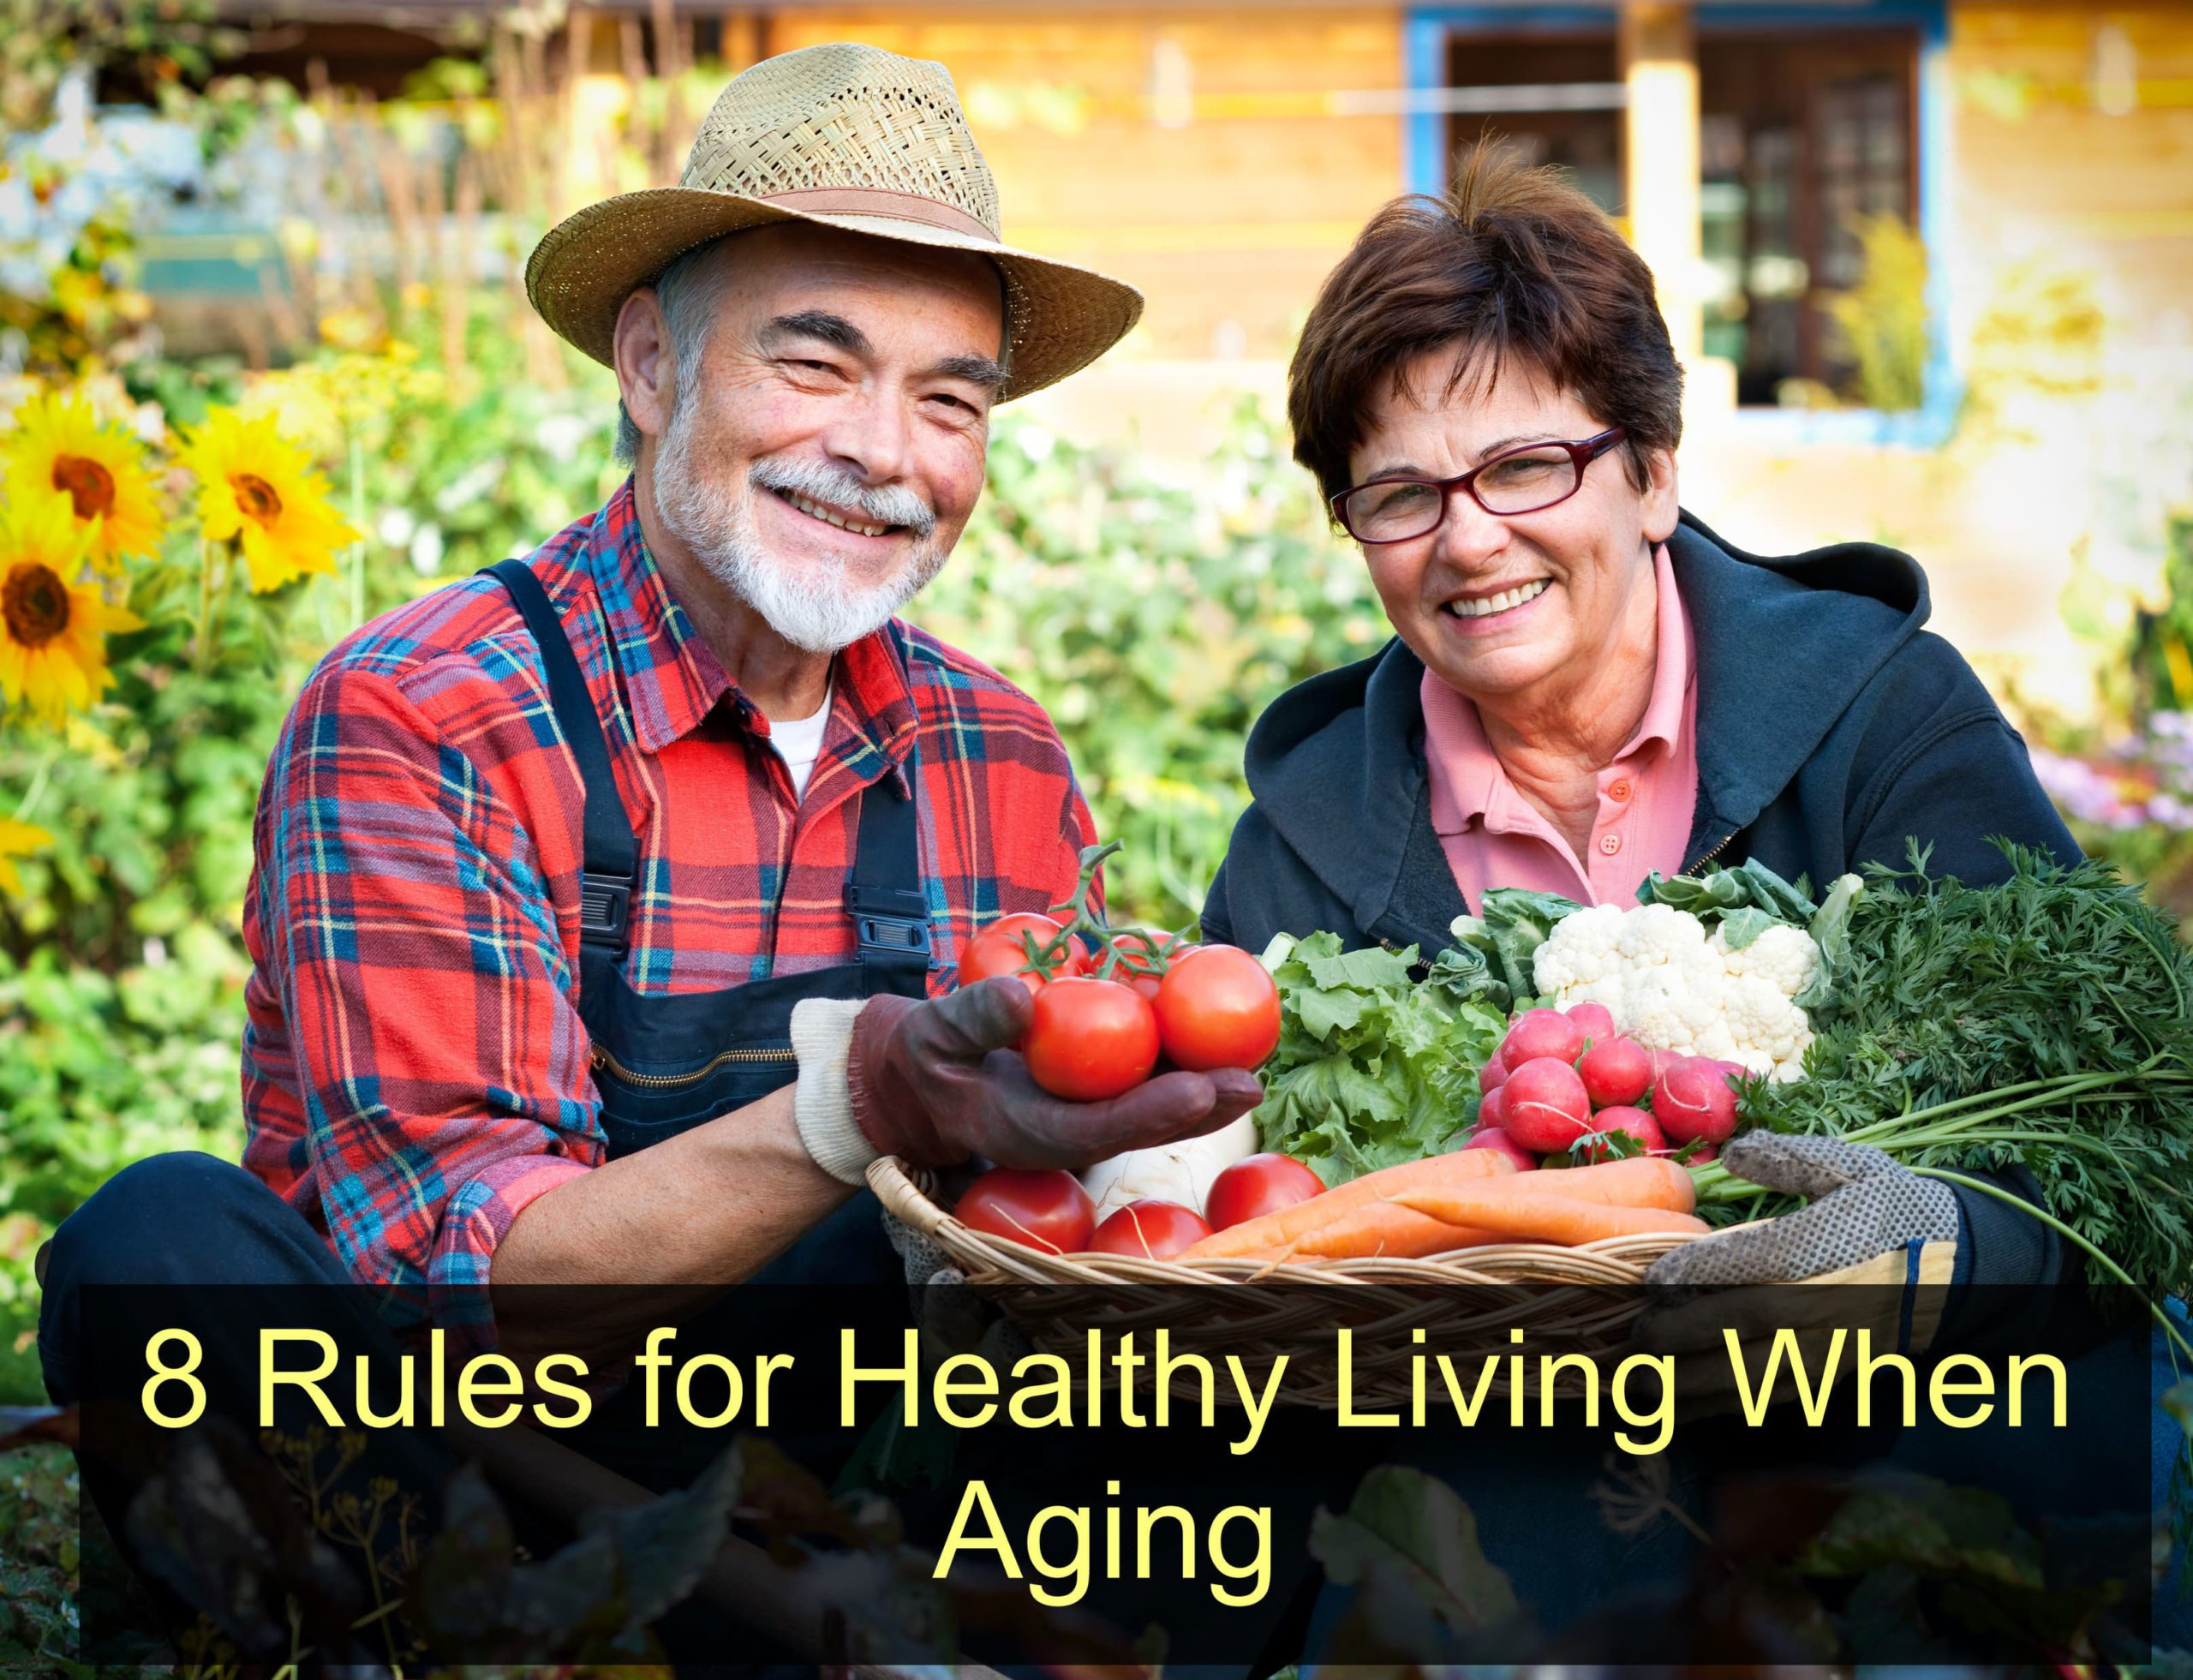 8 Rules for Healthy Living When Aging